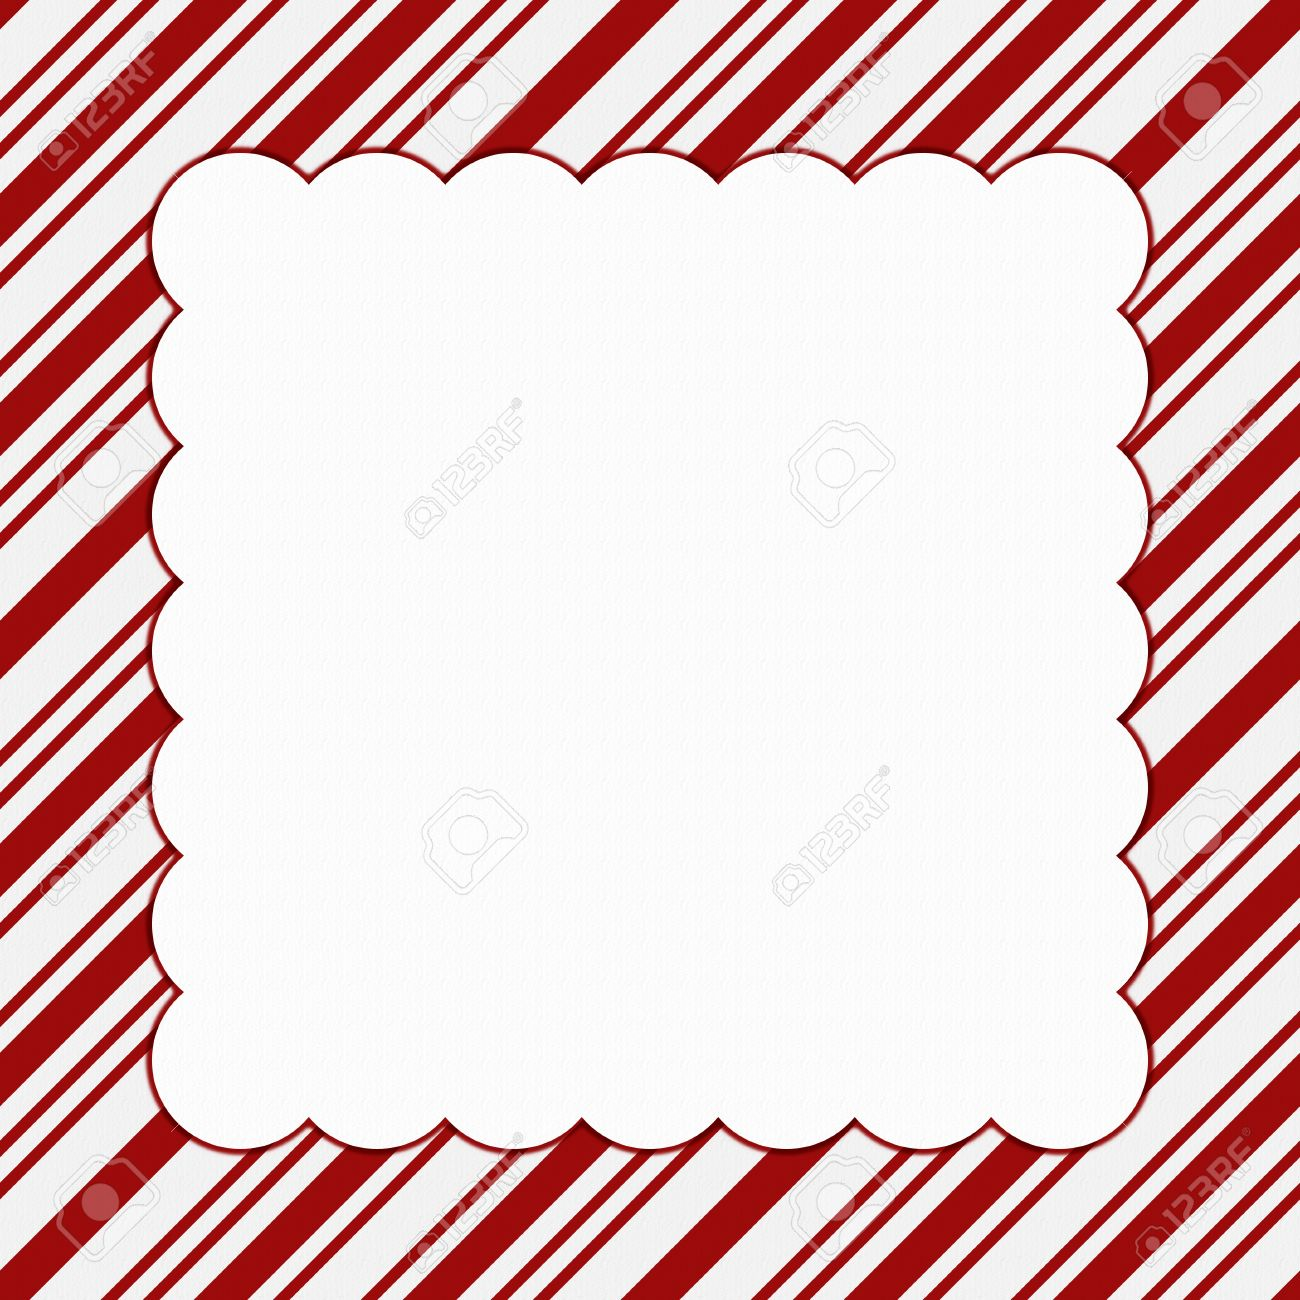 red white striped diagonal christmas holiday xmas season stock photo red white striped diagonal christmas holiday xmas season invitation scrapbook page invite stationary paper abstract pattern